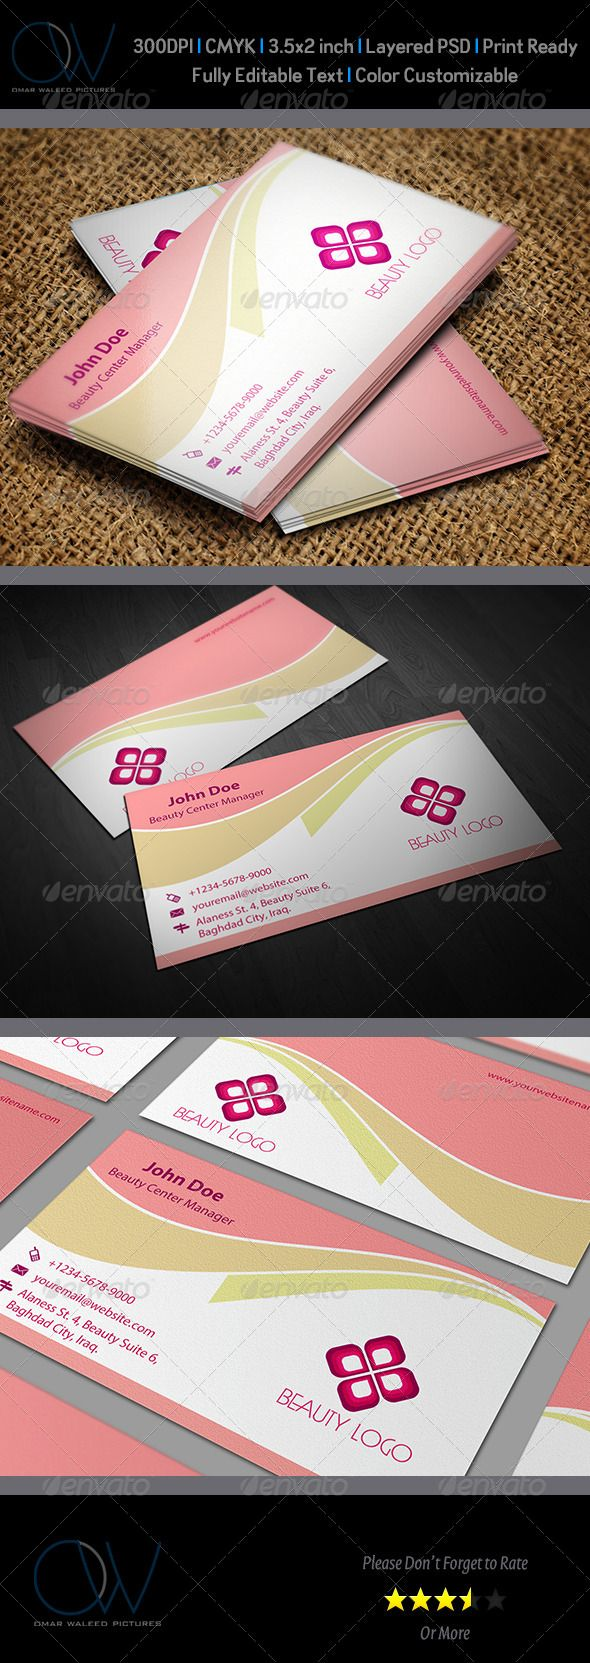 120 best business card images on pinterest fonts business cards beauty salon business card template vol1 magicingreecefo Images